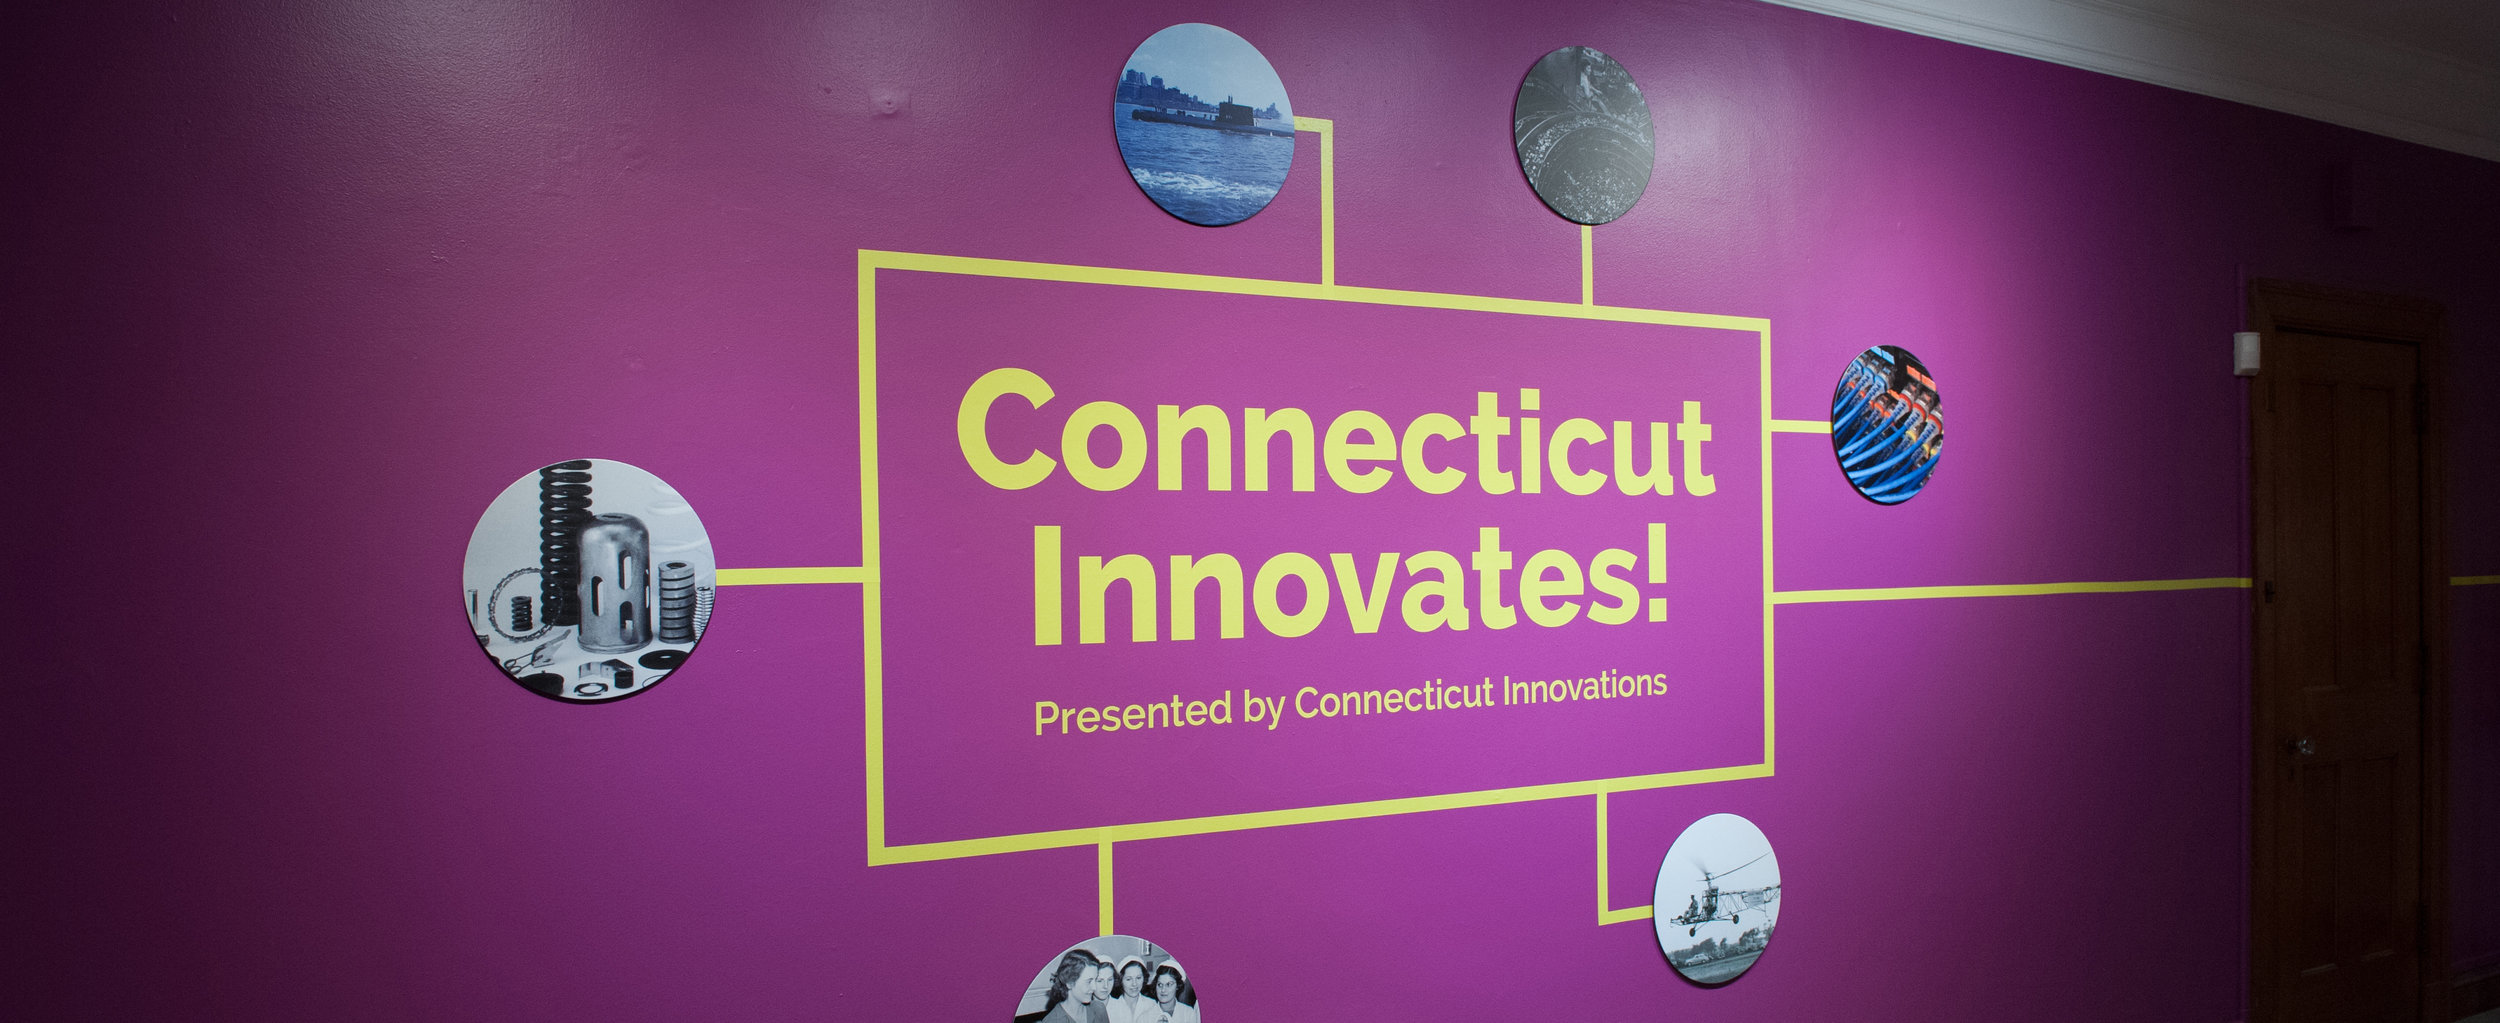 CONNECTICUT INNOVATES!